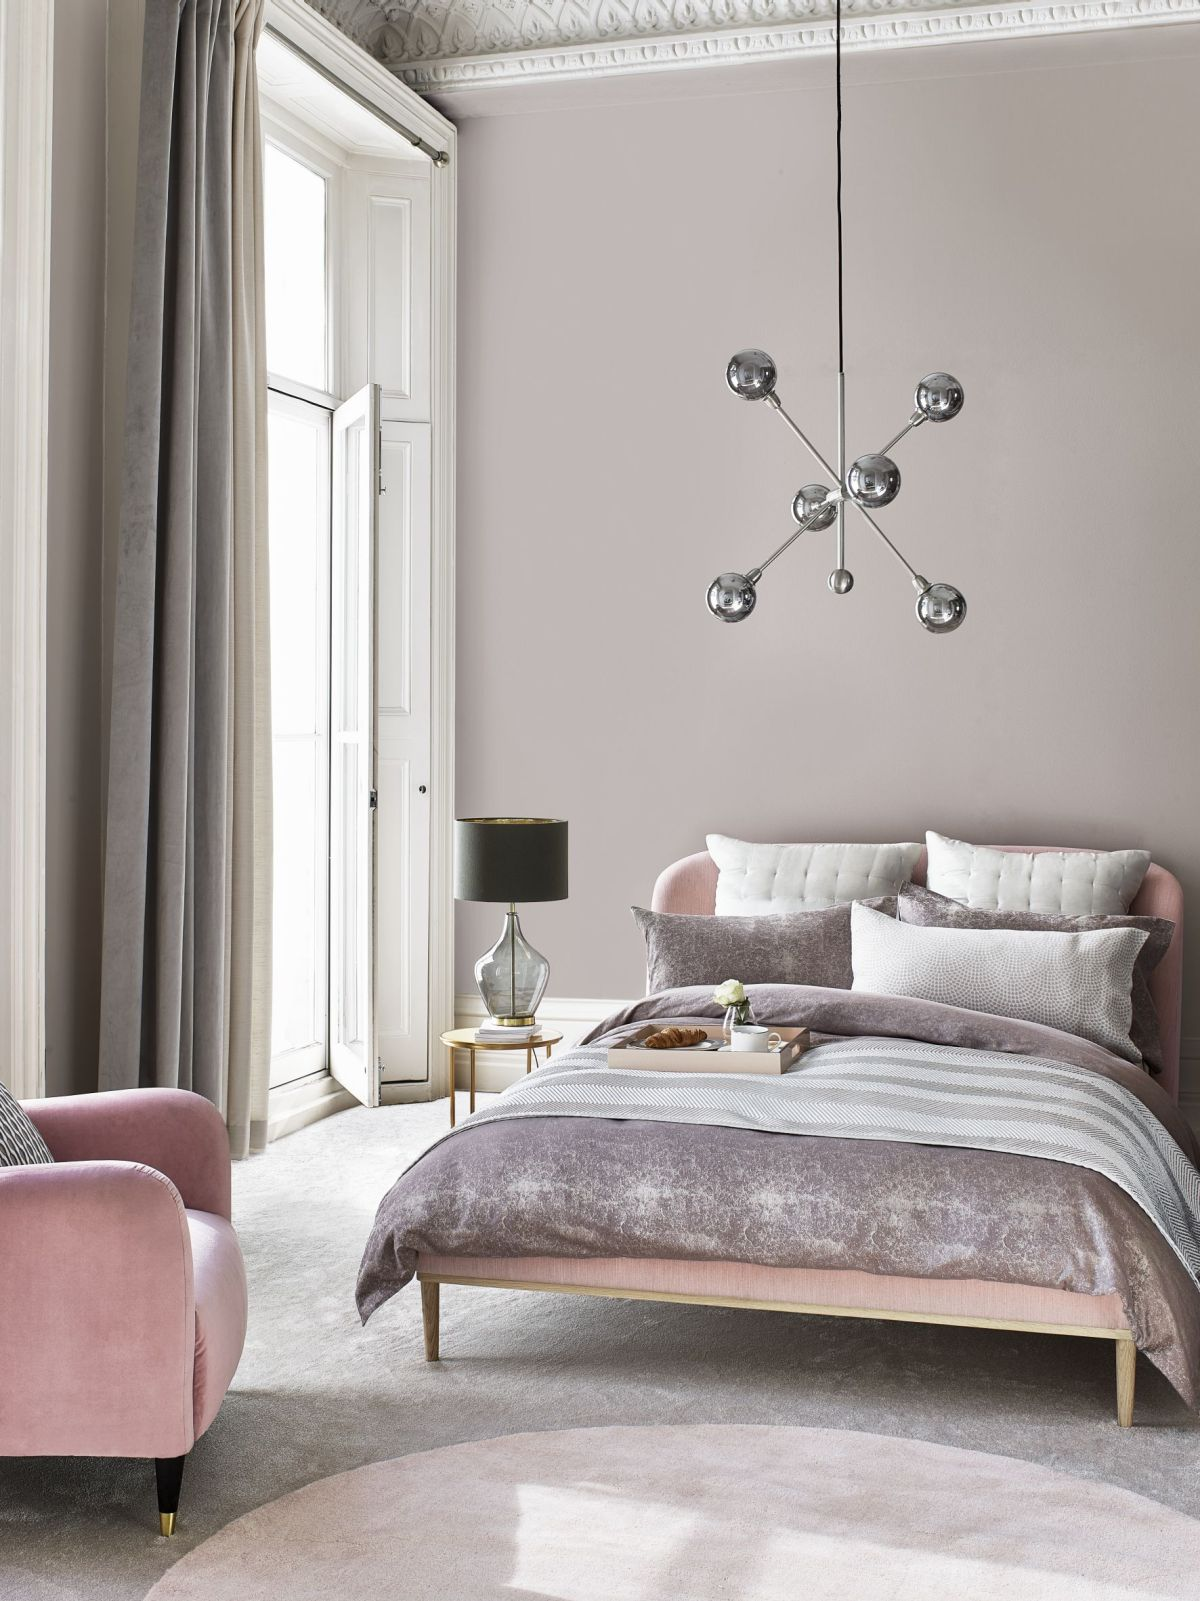 Bedroom Curtain Ideas 16 Curtain Designs For Beautiful Boudoirs Real Homes